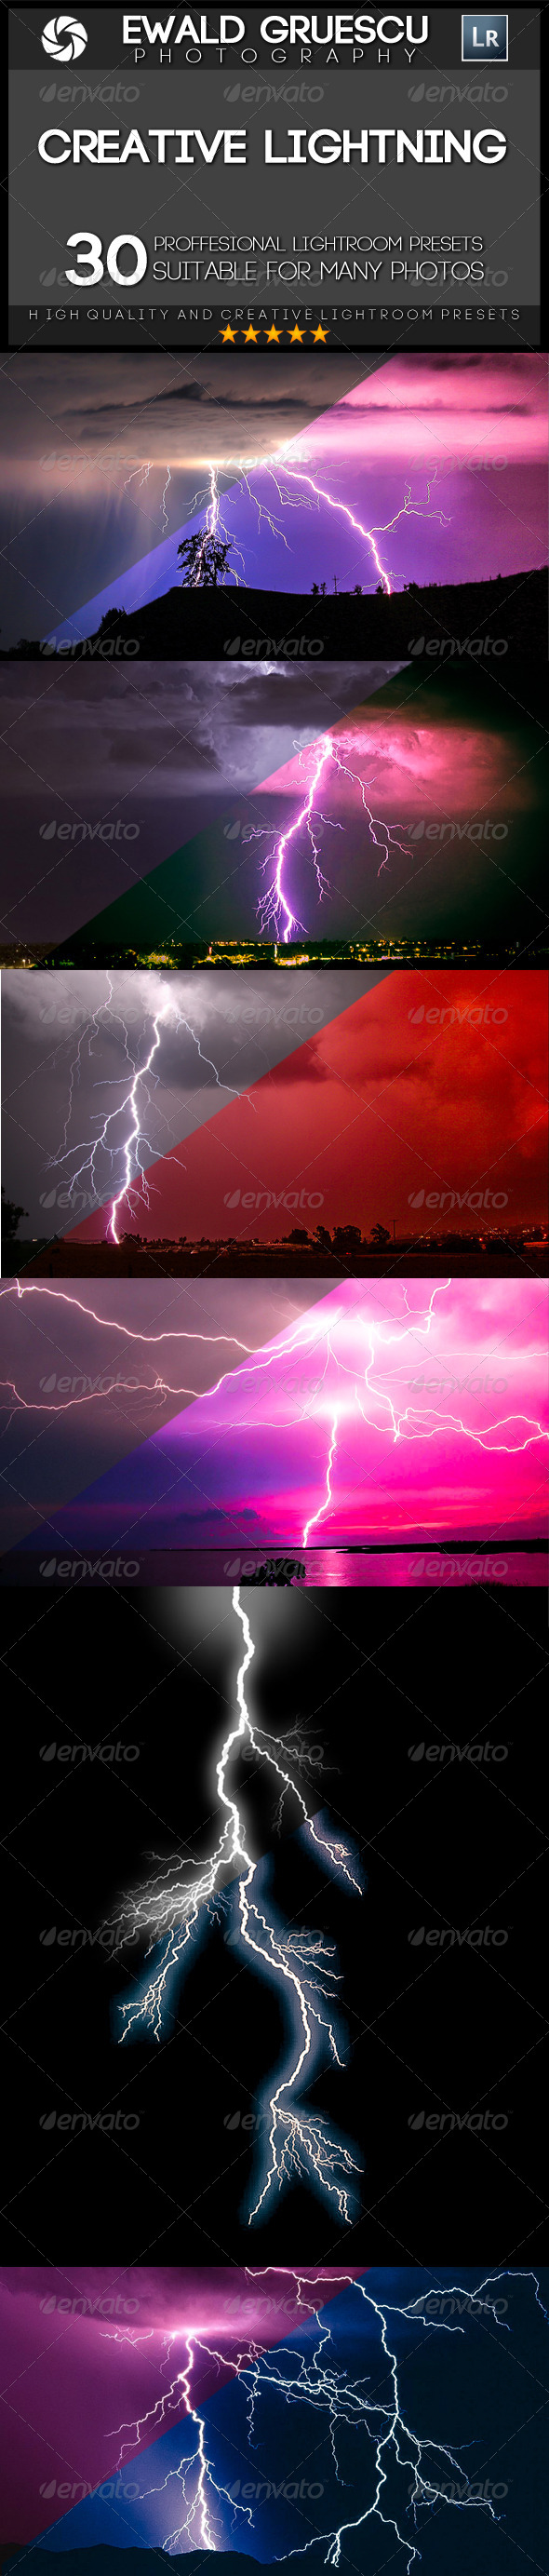 GraphicRiver 30 Lightning Lightroom Presets 7507327